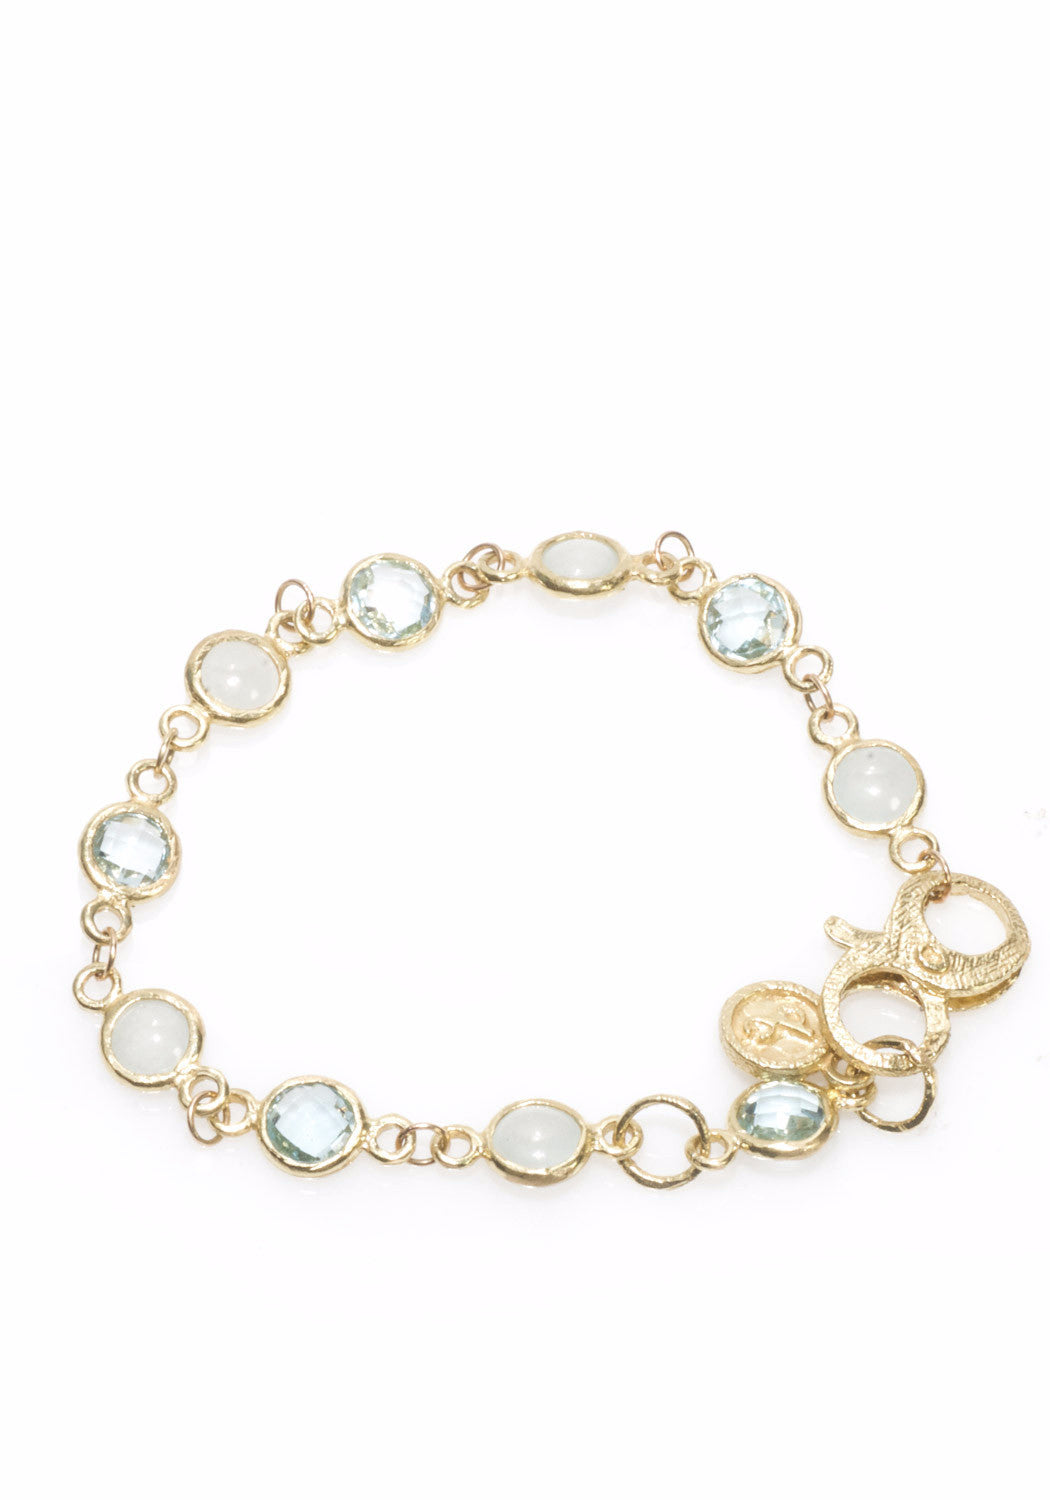 Dominique Cohen Blue Topaz & Aqua Bezel Set Bracelet